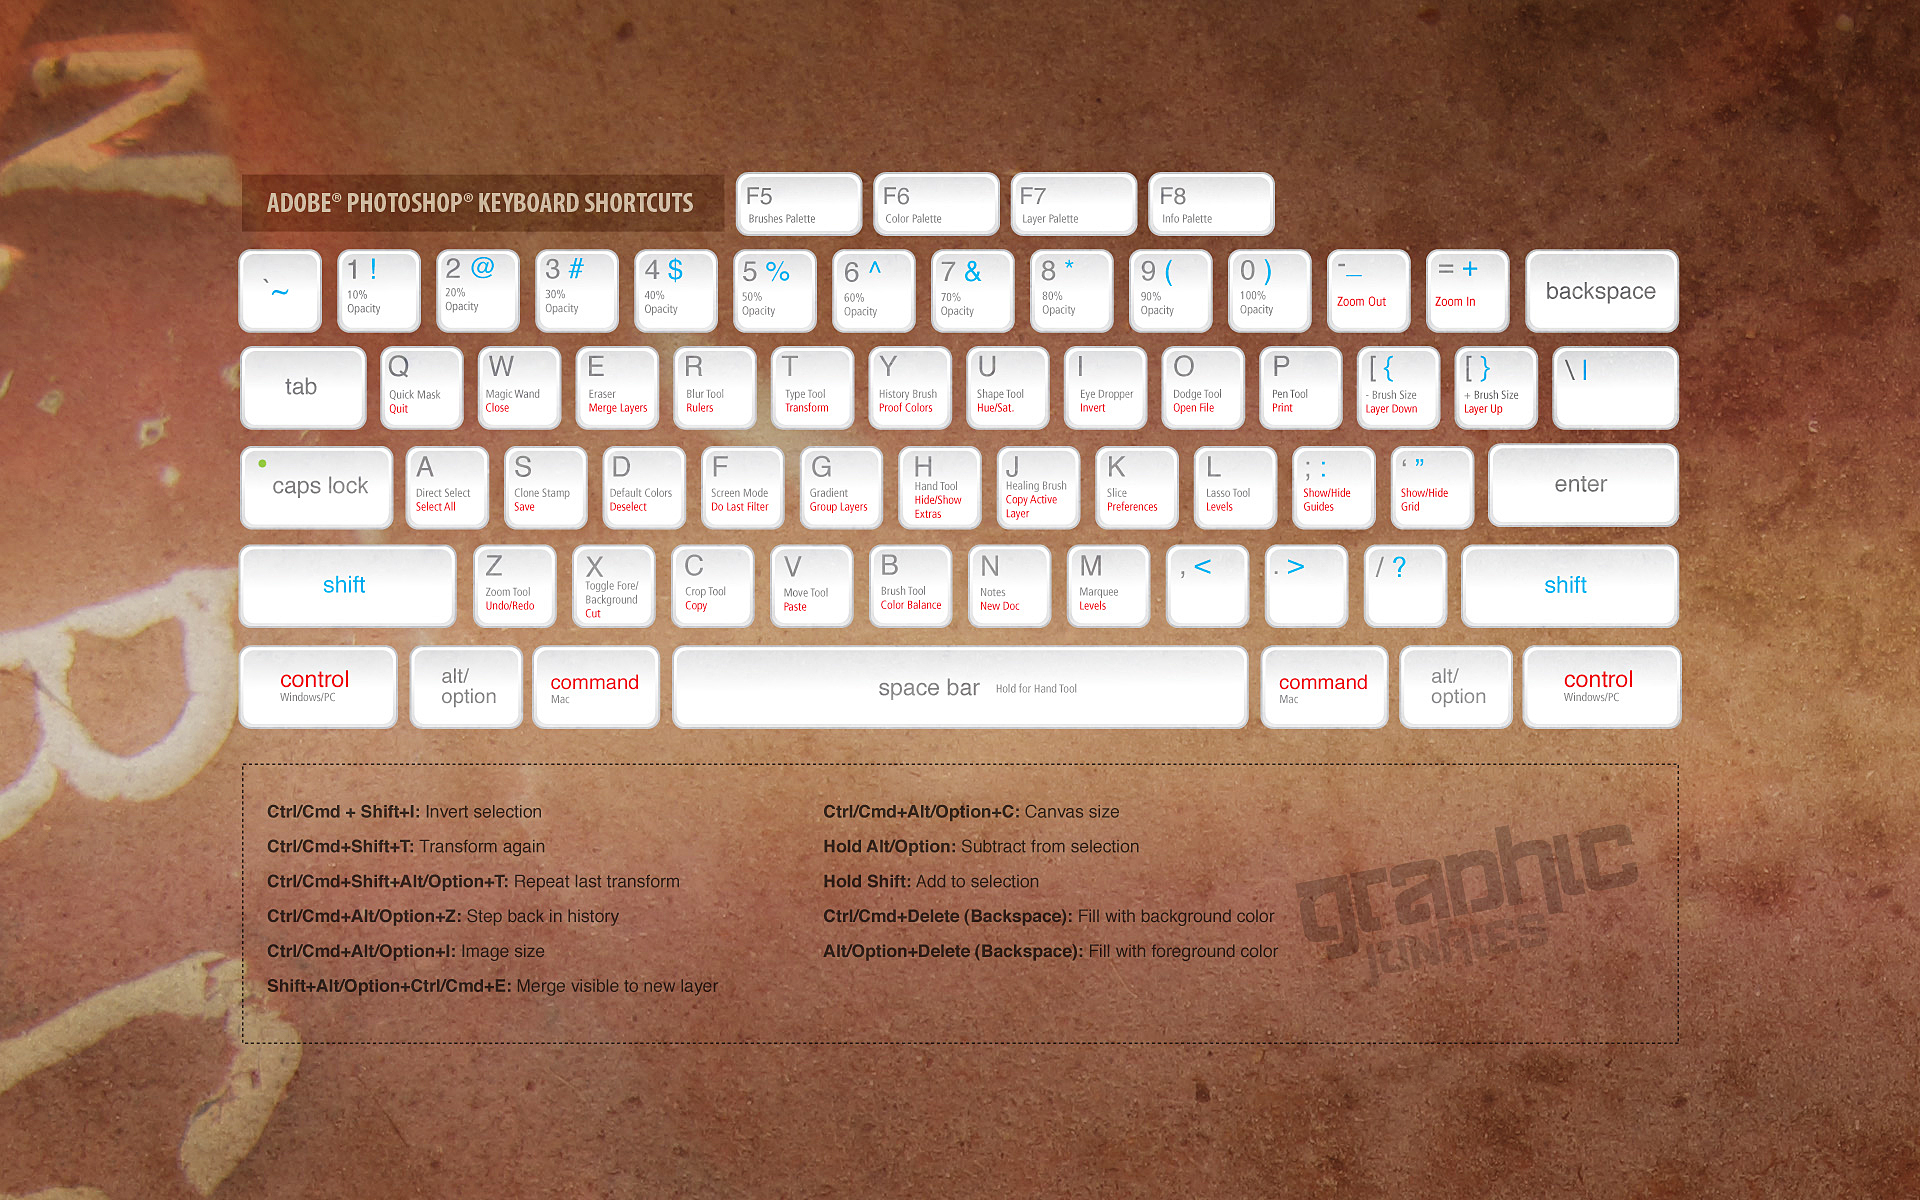 small resolution of abode photoshop keyboard shortcuts keys diagram detailed poster canvas diy wall sticker home bar posters decoration gift